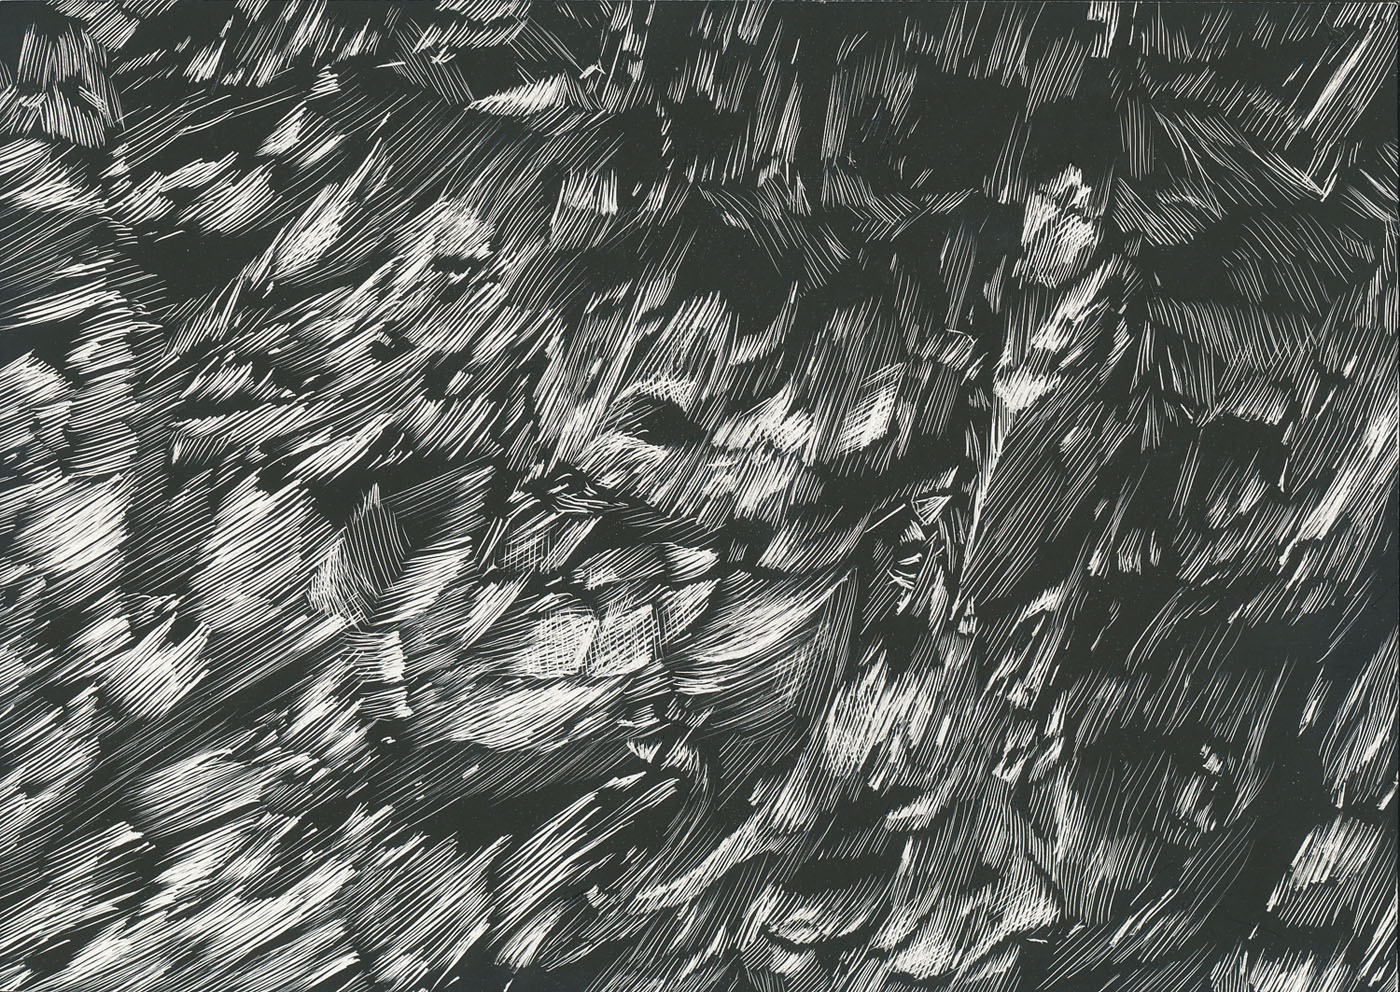 Canyon Variation (detail), scratchboard, dimensions variable, 2012